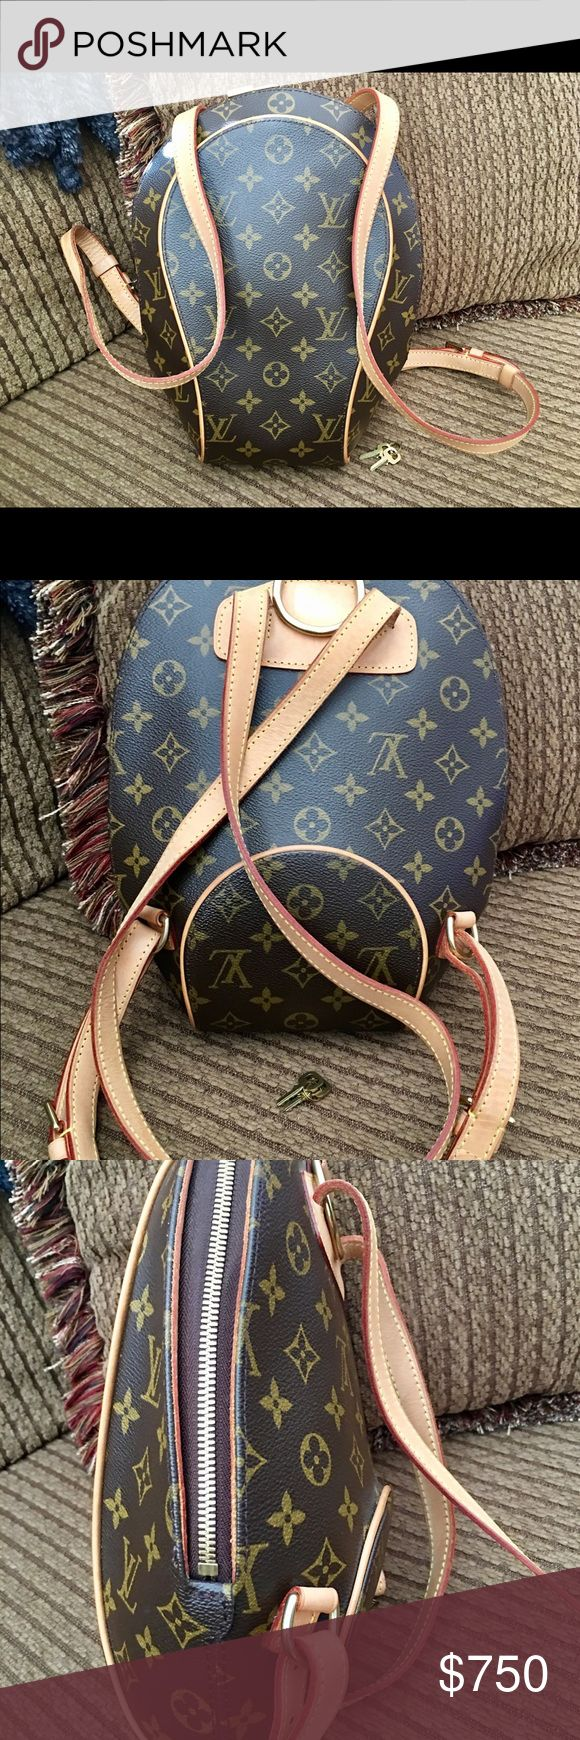 """Louis Vuitton Ellipse Sac A Dos Backpack 💕FIRM💕 This is an authentic Louis Vuitton Ellipse backpack. In very good condition. Clean inside and out as you can see from the photos. Minor wear on the shoulder straps. This bag was only carried a handful of times. Comes with lock and keys. Measures 12 1/2"""" x 9 1/2"""" wide by 5 inches deep. Shoulder straps are adjustable. Prices is firm. No trades please. Louis Vuitton Bags Backpacks"""